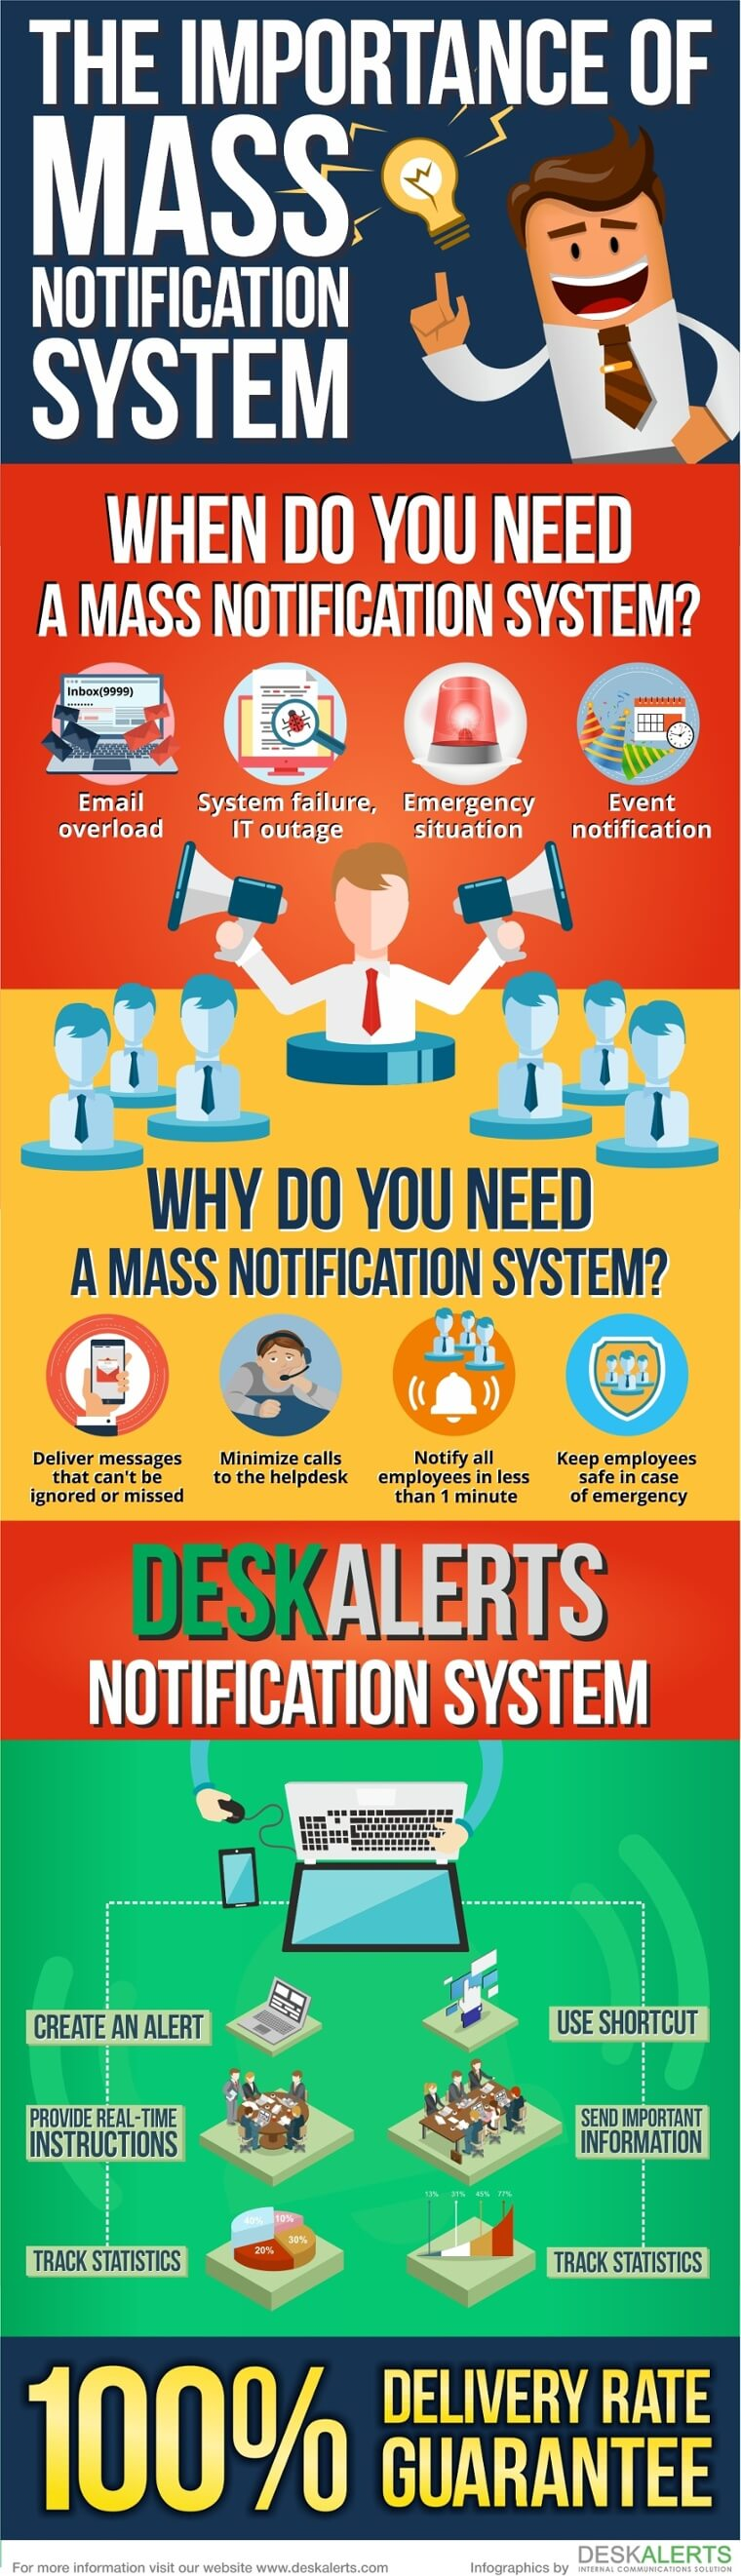 Mass-notification-Infographic-2